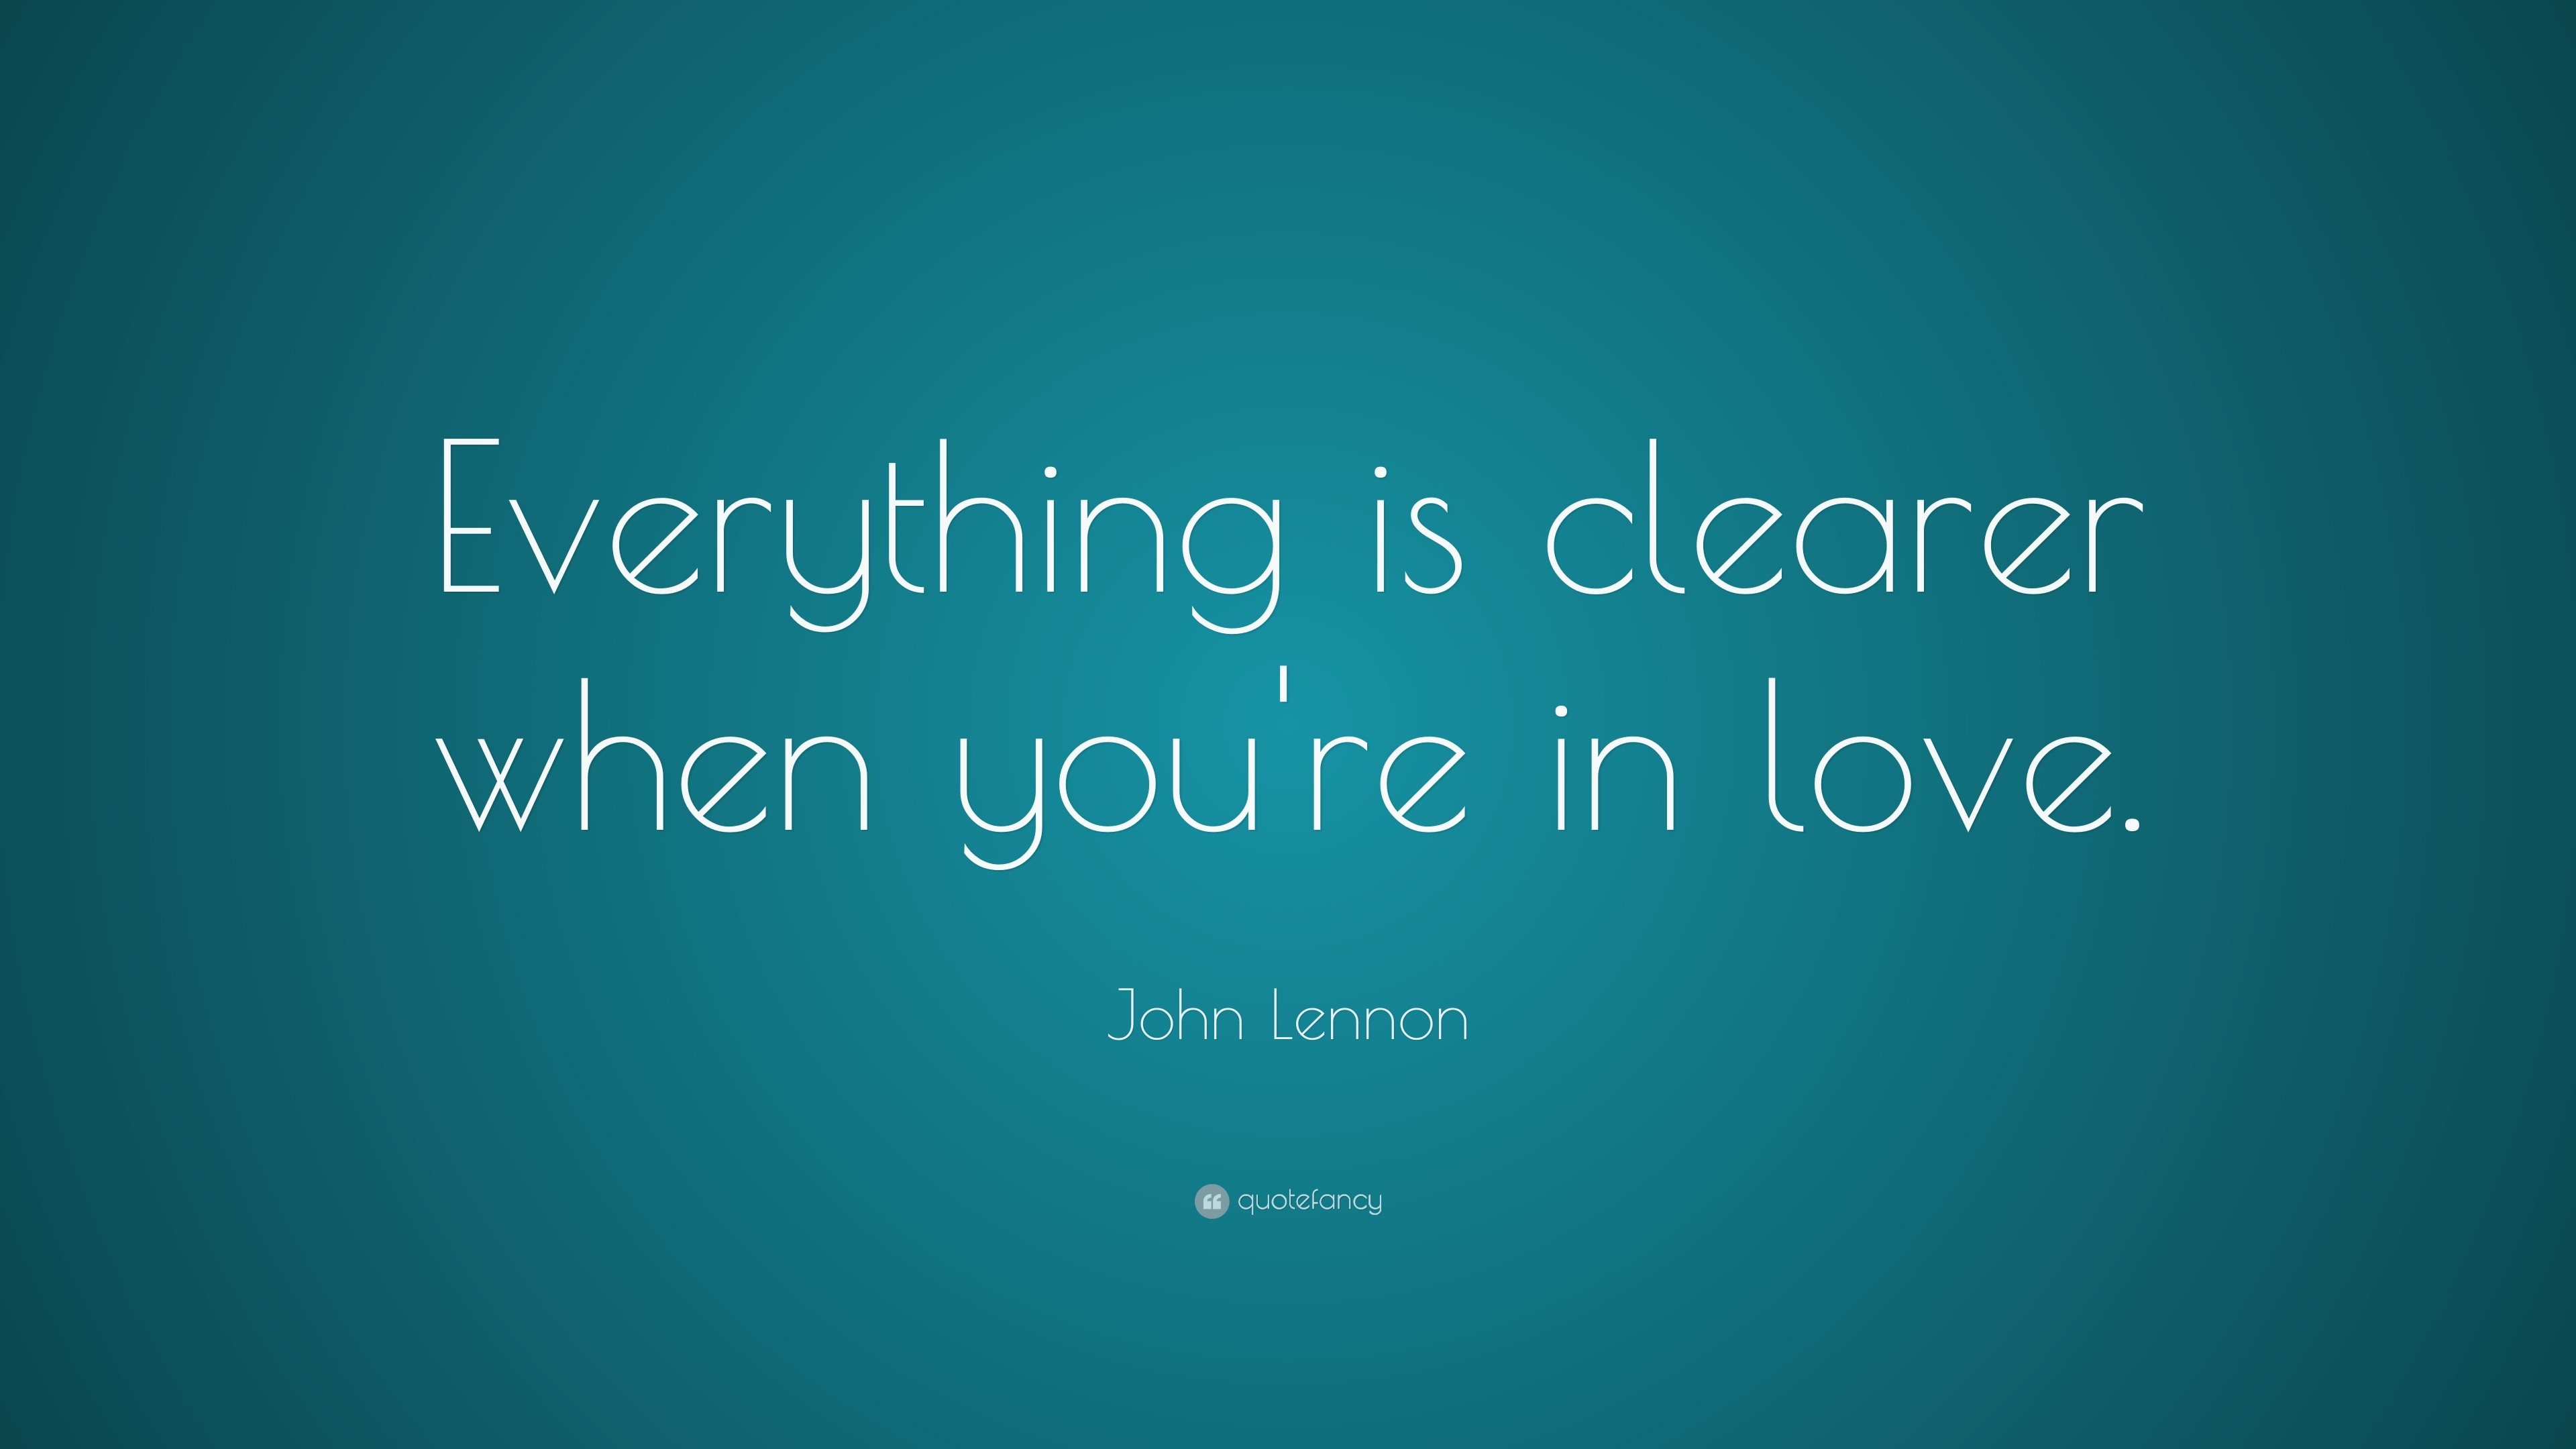 John Lennon Quotes (15 wallpapers) – Quotefancy